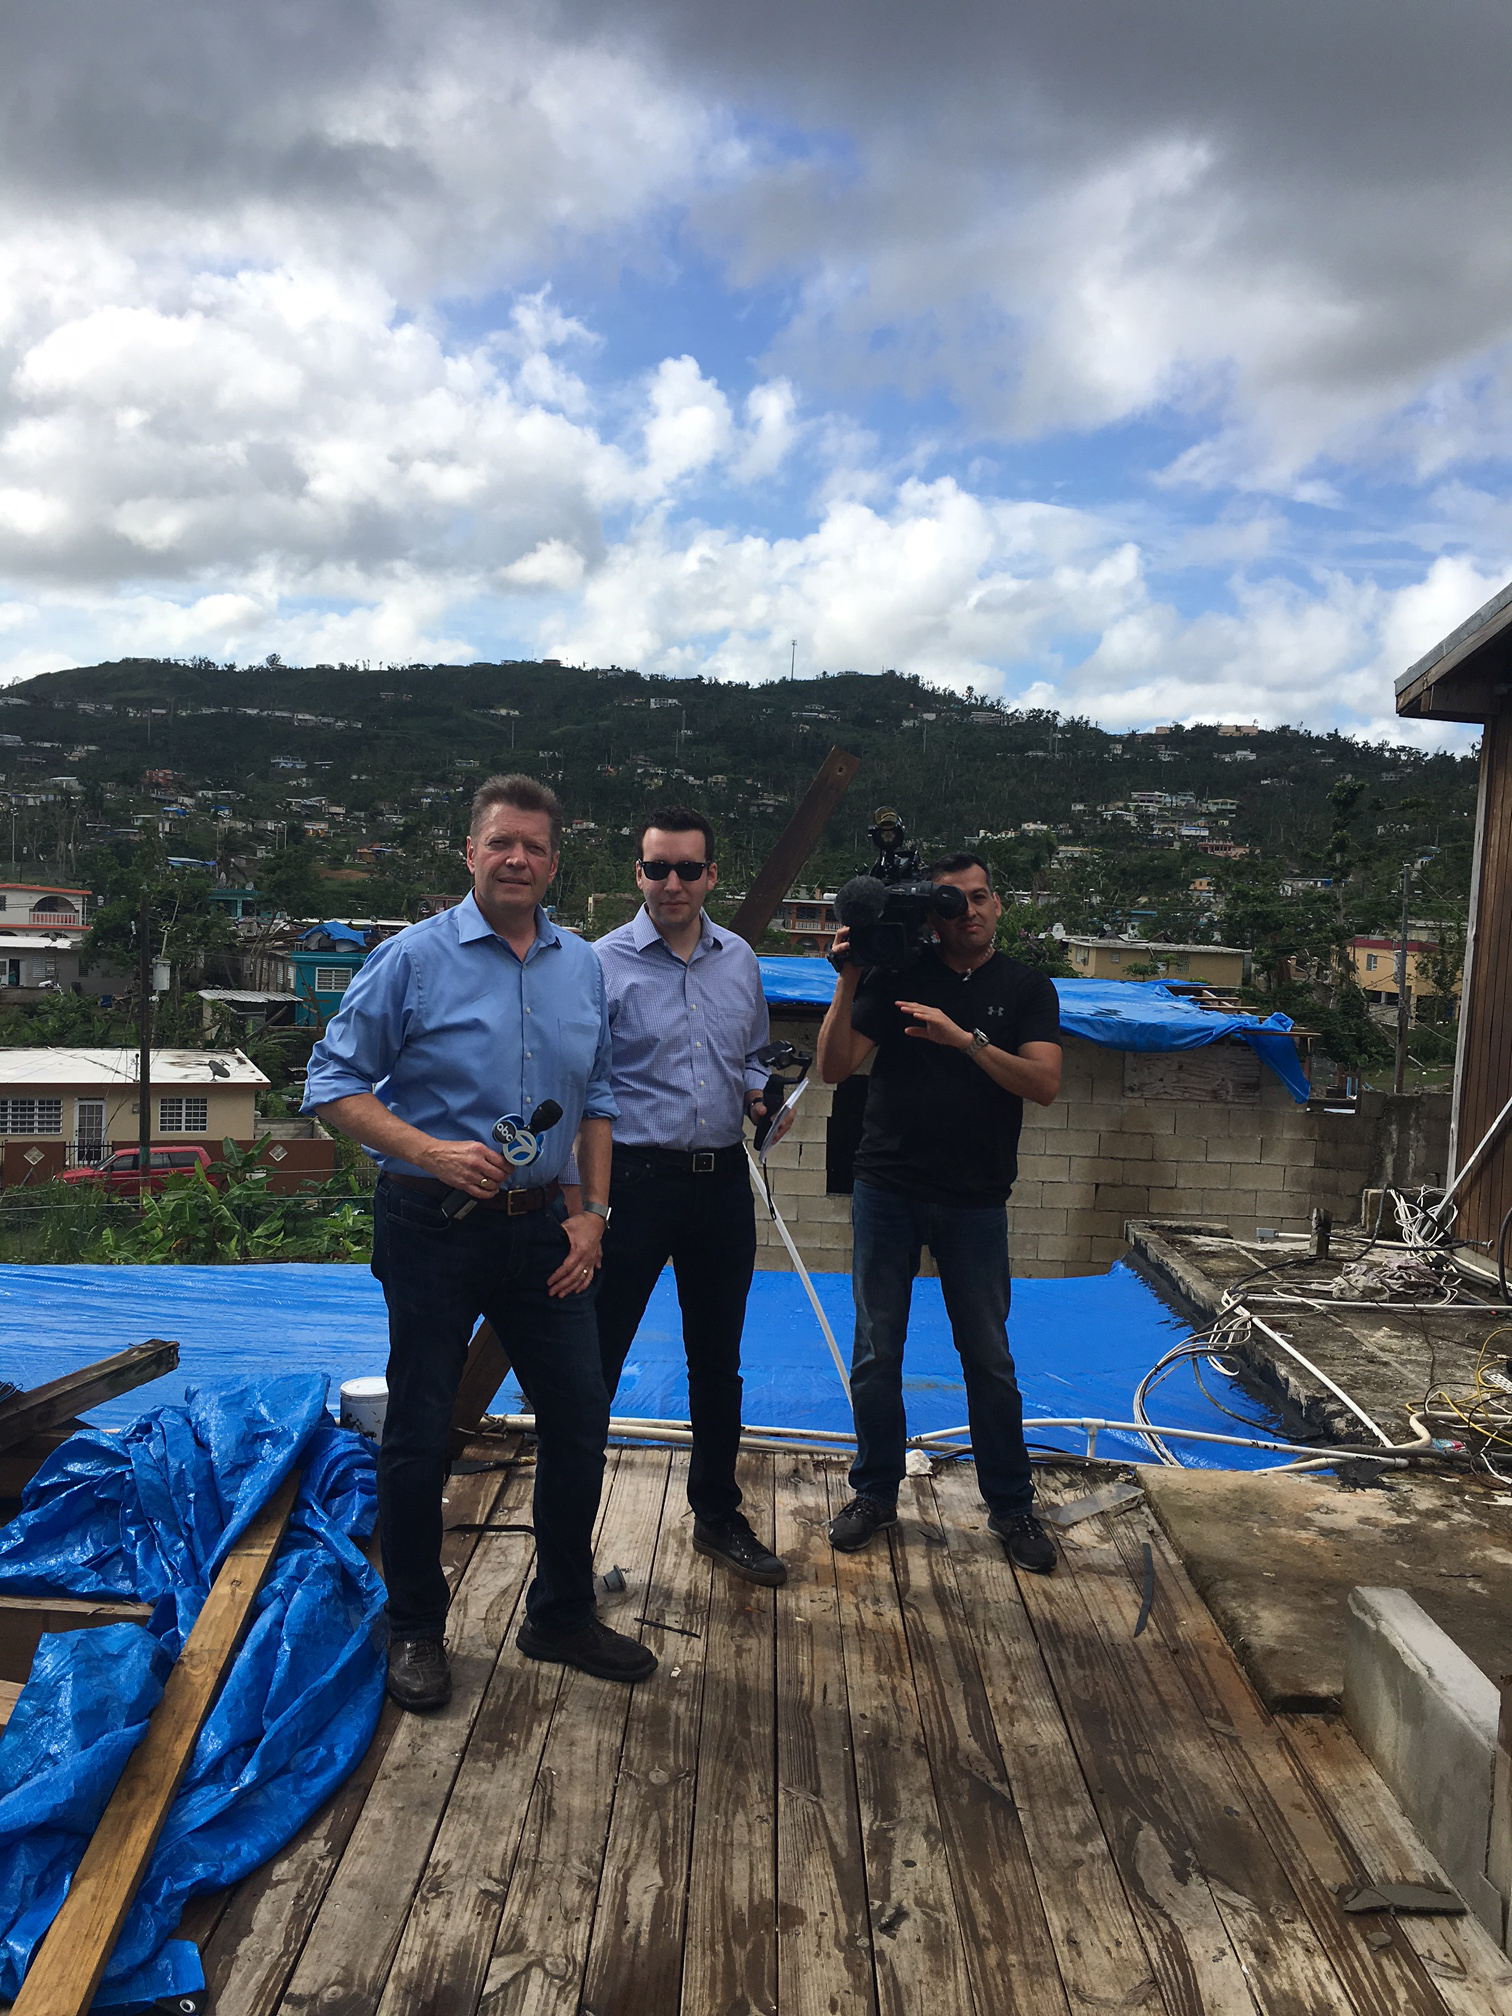 <div class='meta'><div class='origin-logo' data-origin='WLS'></div><span class='caption-text' data-credit=''>ABC7 team of Alan Krashesky, Ross Weidner and Jose Sanchez on what used to be the rooftop terrace of a senior center in Galateo, Puerto Rico</span></div>